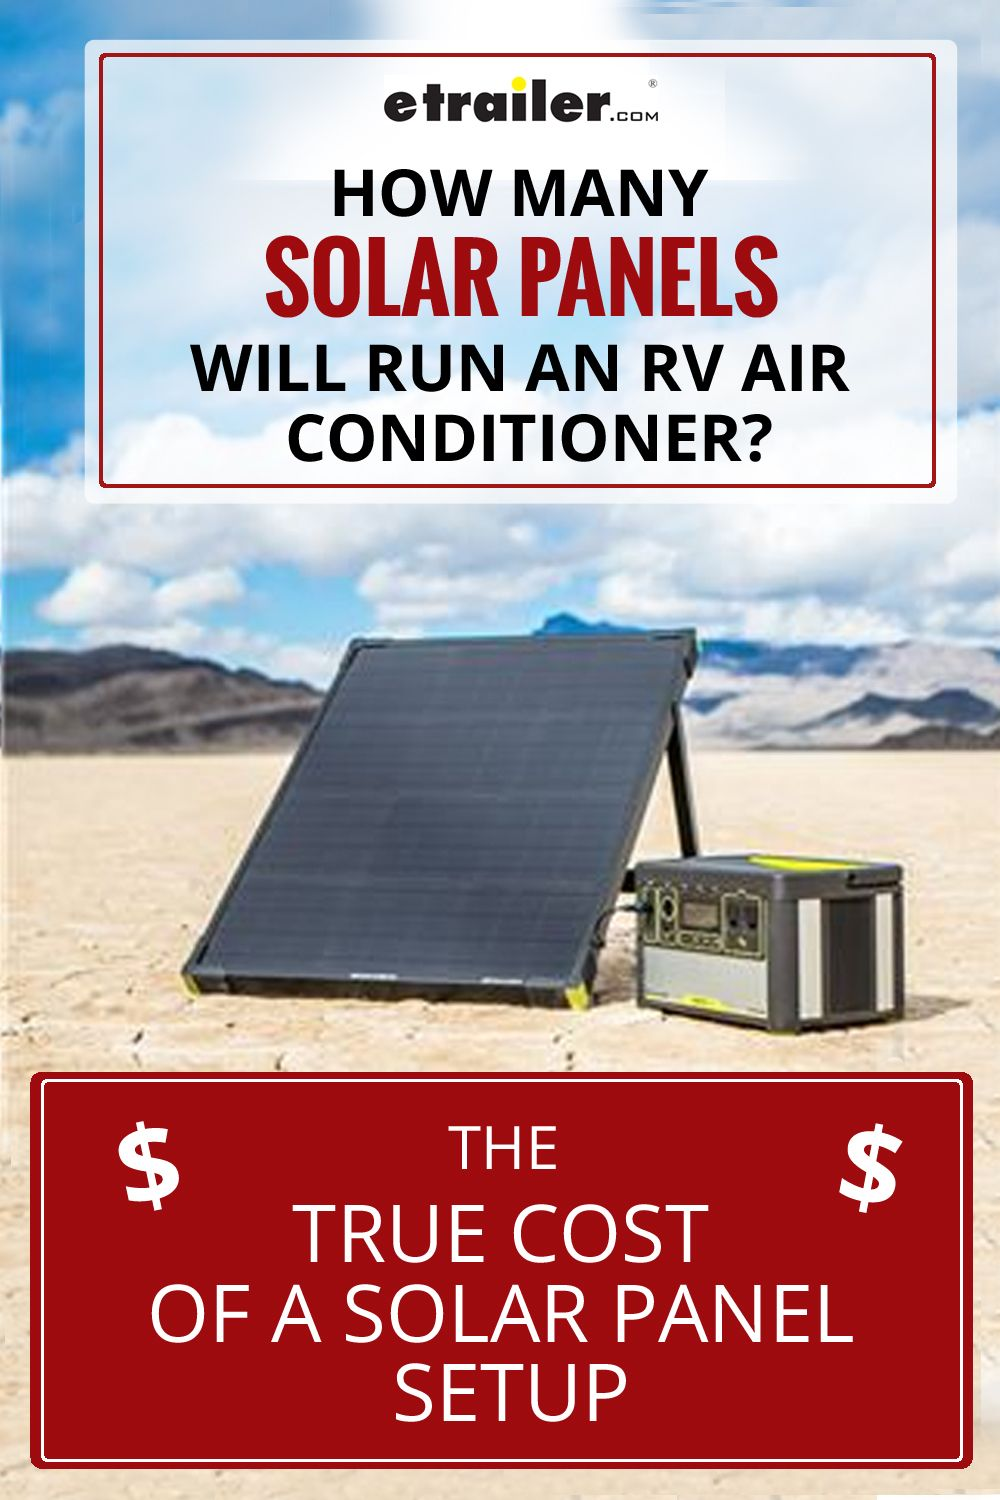 There's no question that solar panels are a great, green